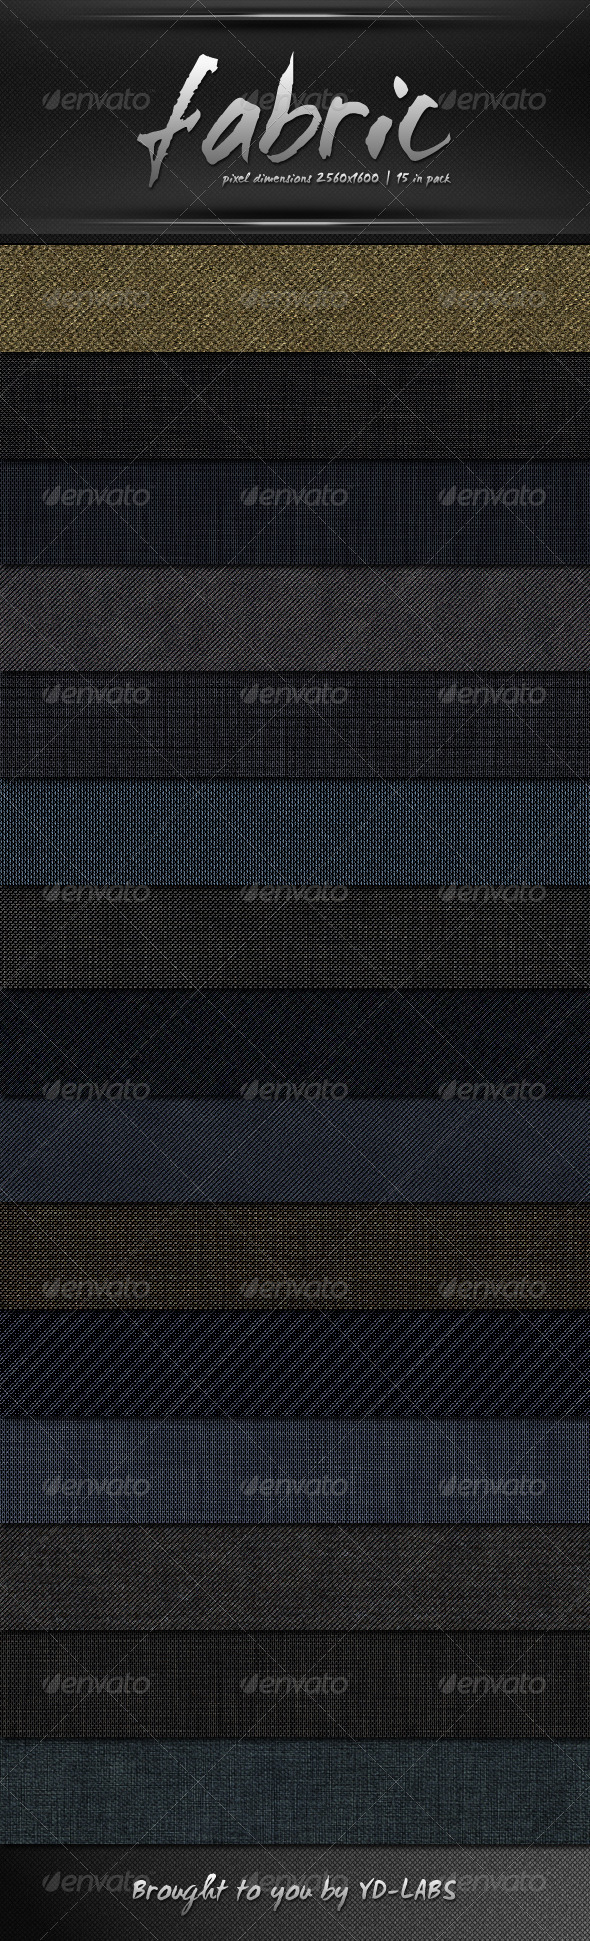 GraphicRiver Fabric Pack 1 1044945